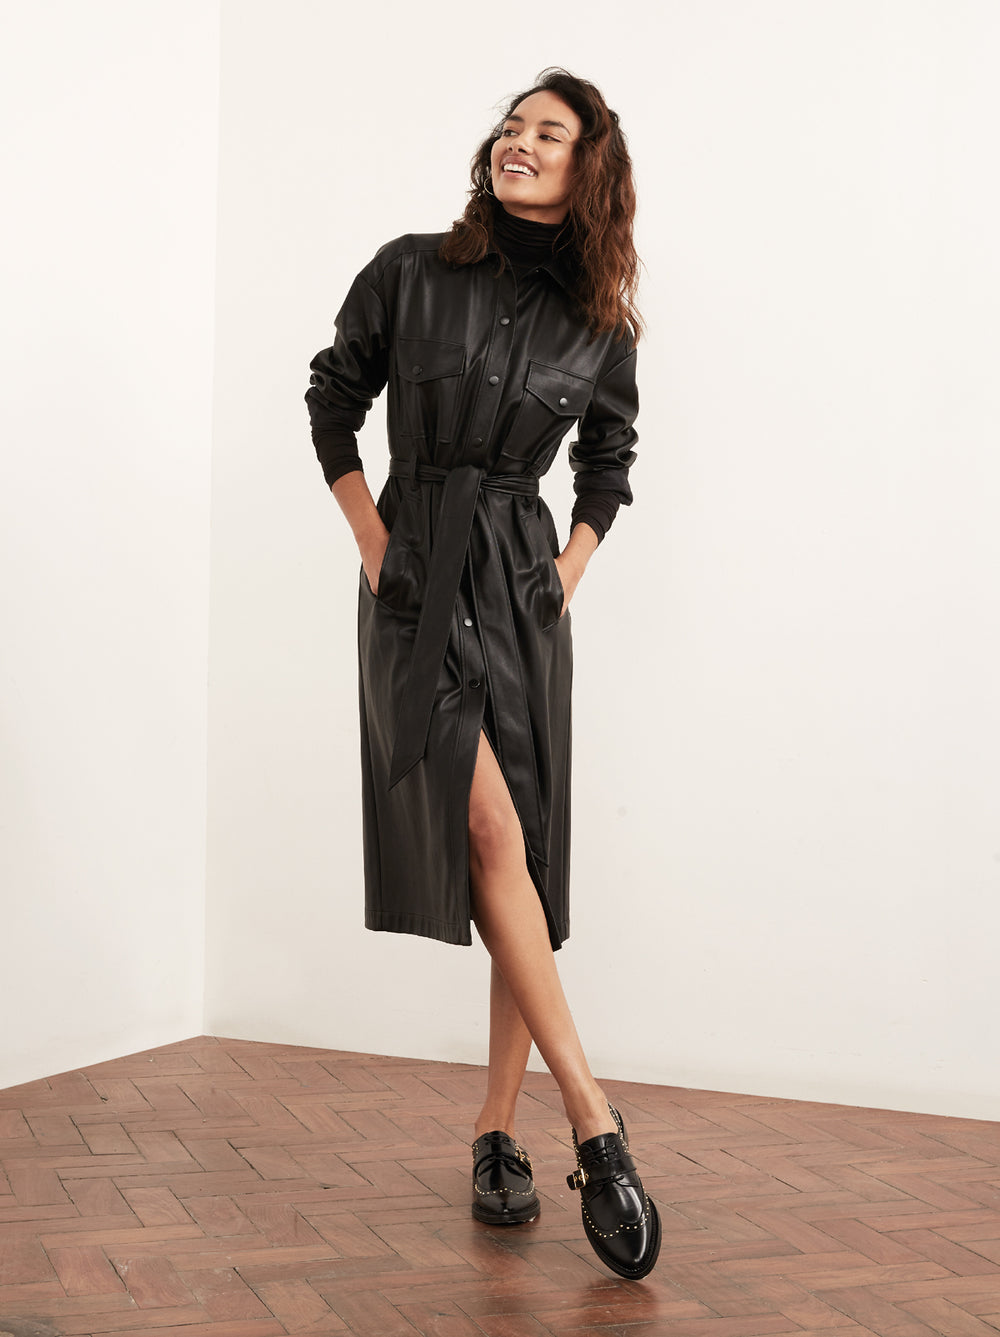 Jacqueline Black Vegan Leather Shirt Dress Womens Shirt Dresses